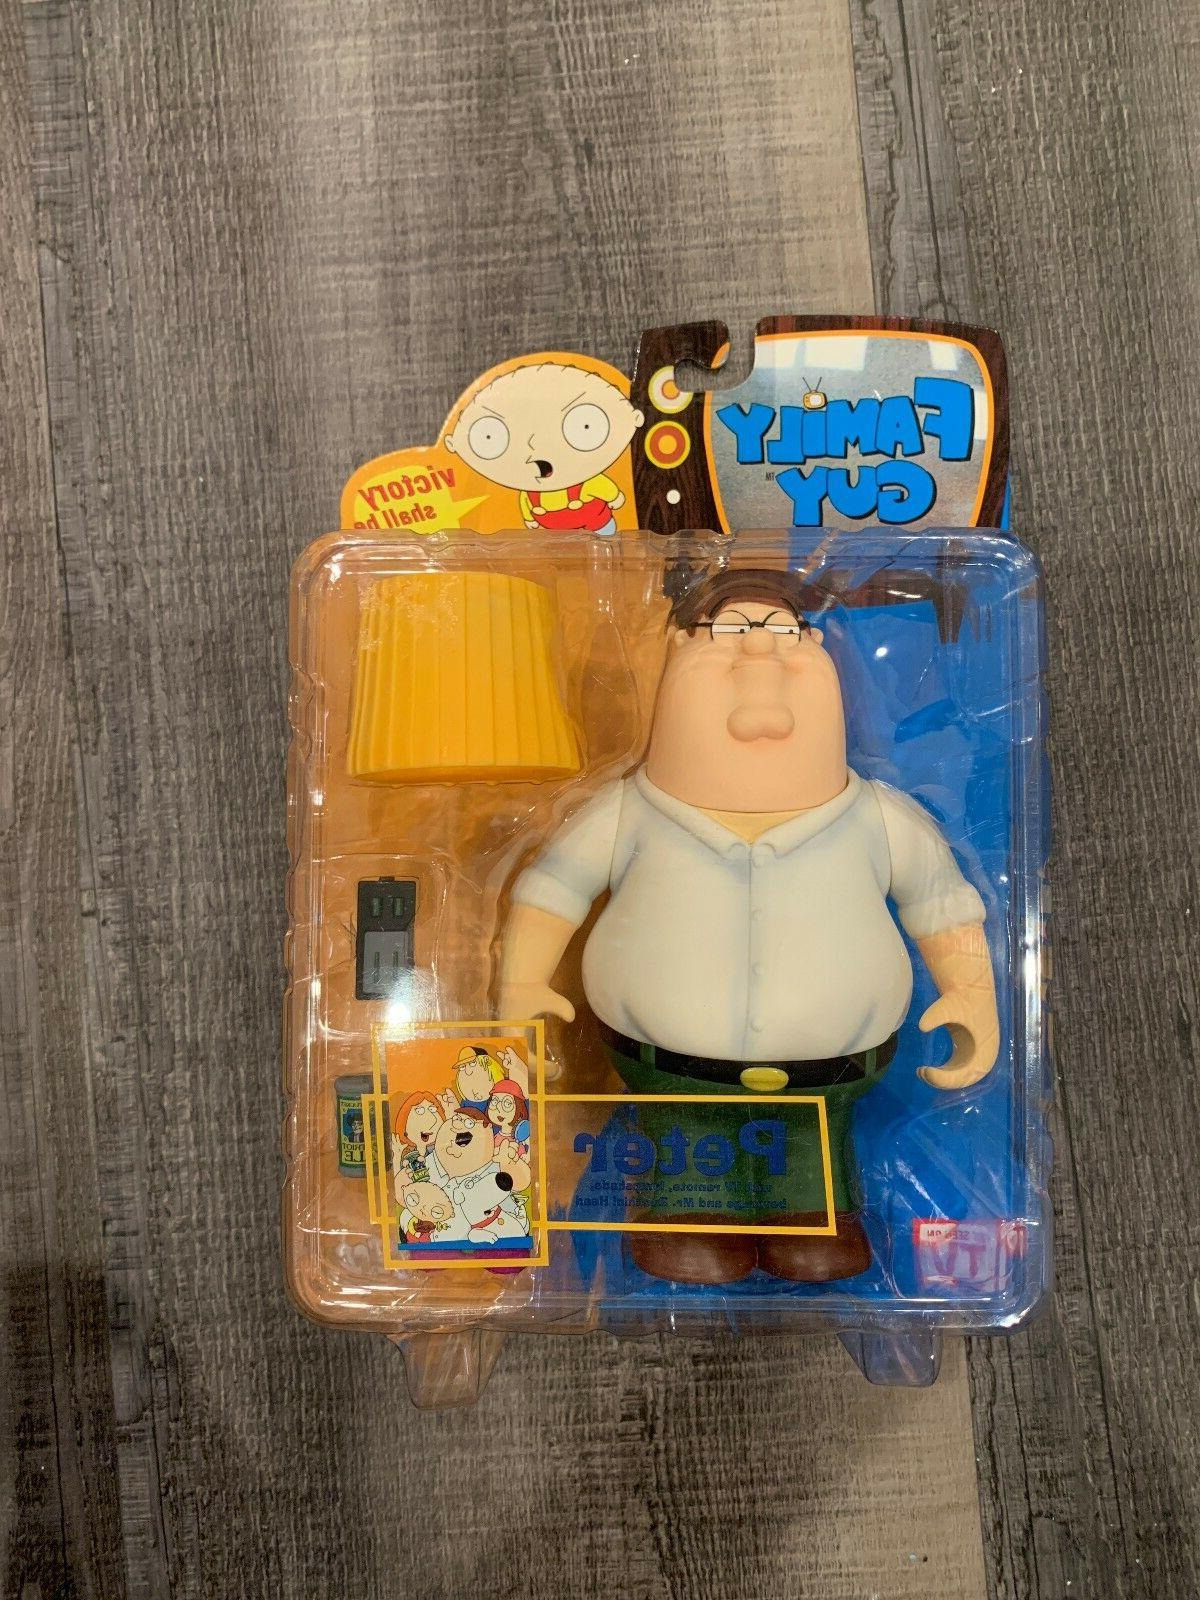 family guy peter griffin series 1 action